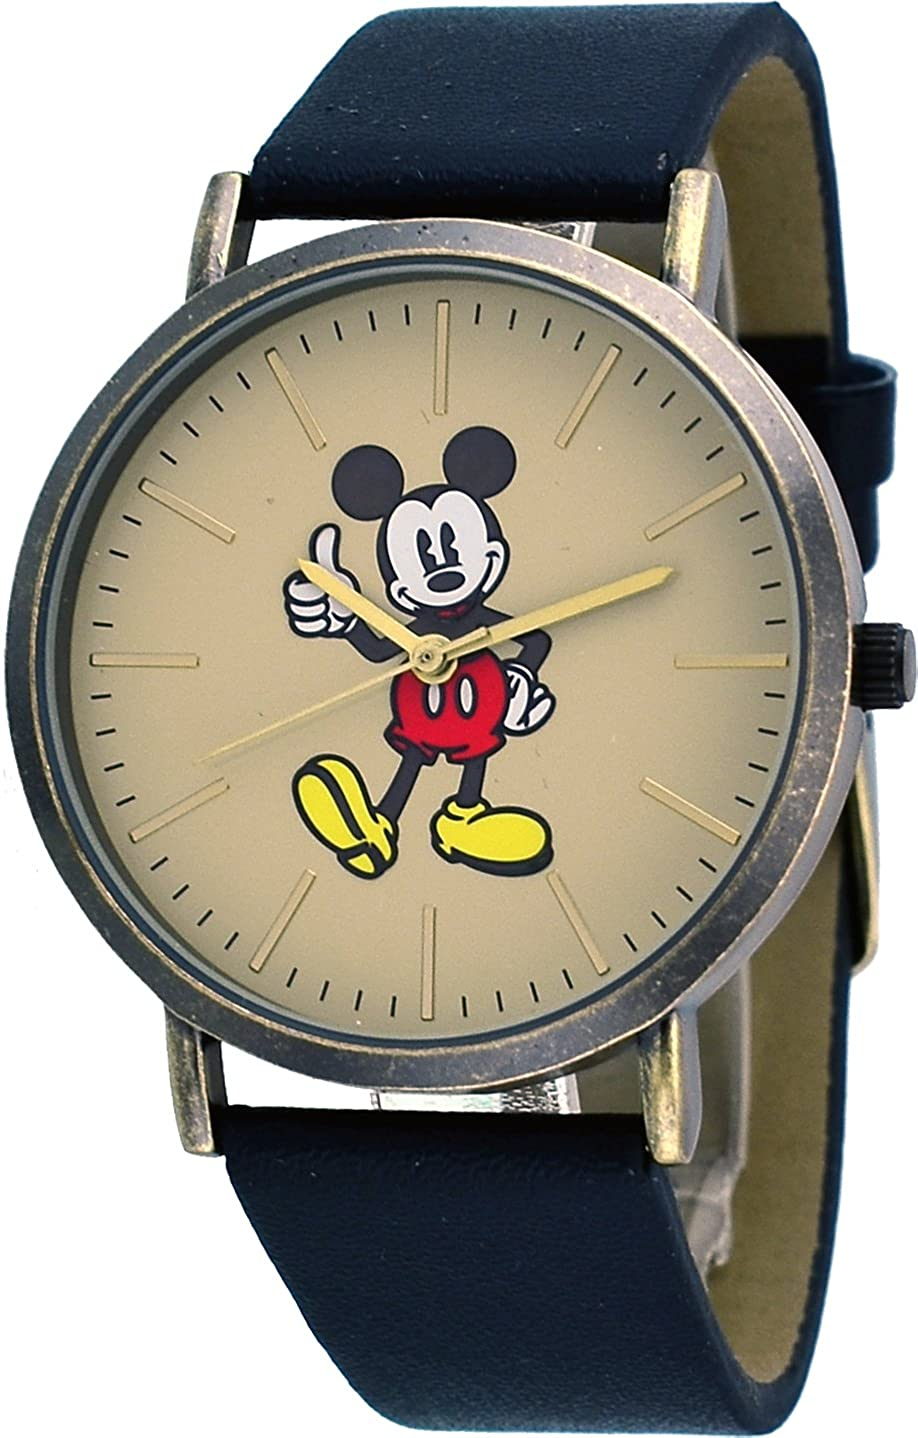 Disney MK1522 Unisex Vintage Copper Tone Minimalist Styling Mickey Mouse Thumbs Up Watch